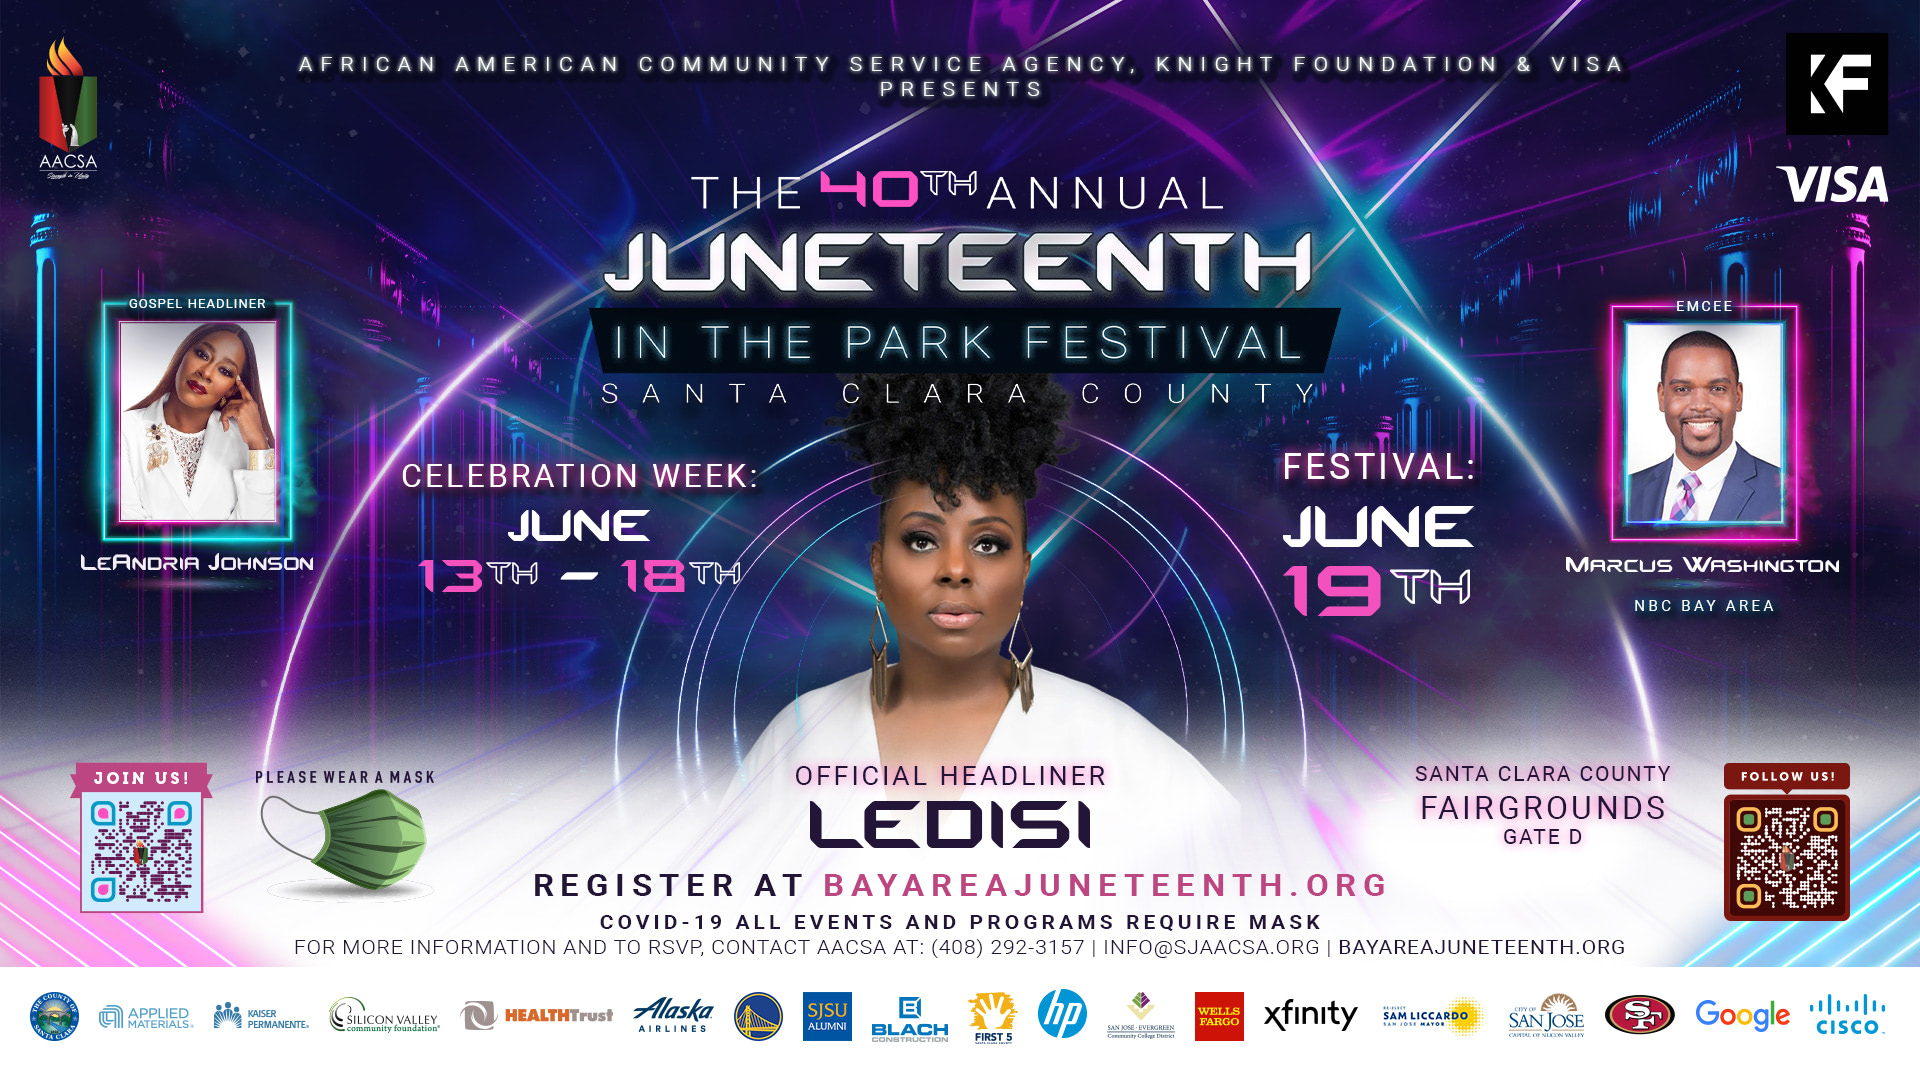 Banner for the 40th Annual Juneteenth In The Park Festival. Featuring Gospel Headliner Le'Andria Johnson & Emcee Marcus Washington. June 19th at the Santa Clara County Fairgrounds - Gate D. 2542 Monterey Rd., San Jose, CA, 95111. Click the banner to see event details & sign-up!